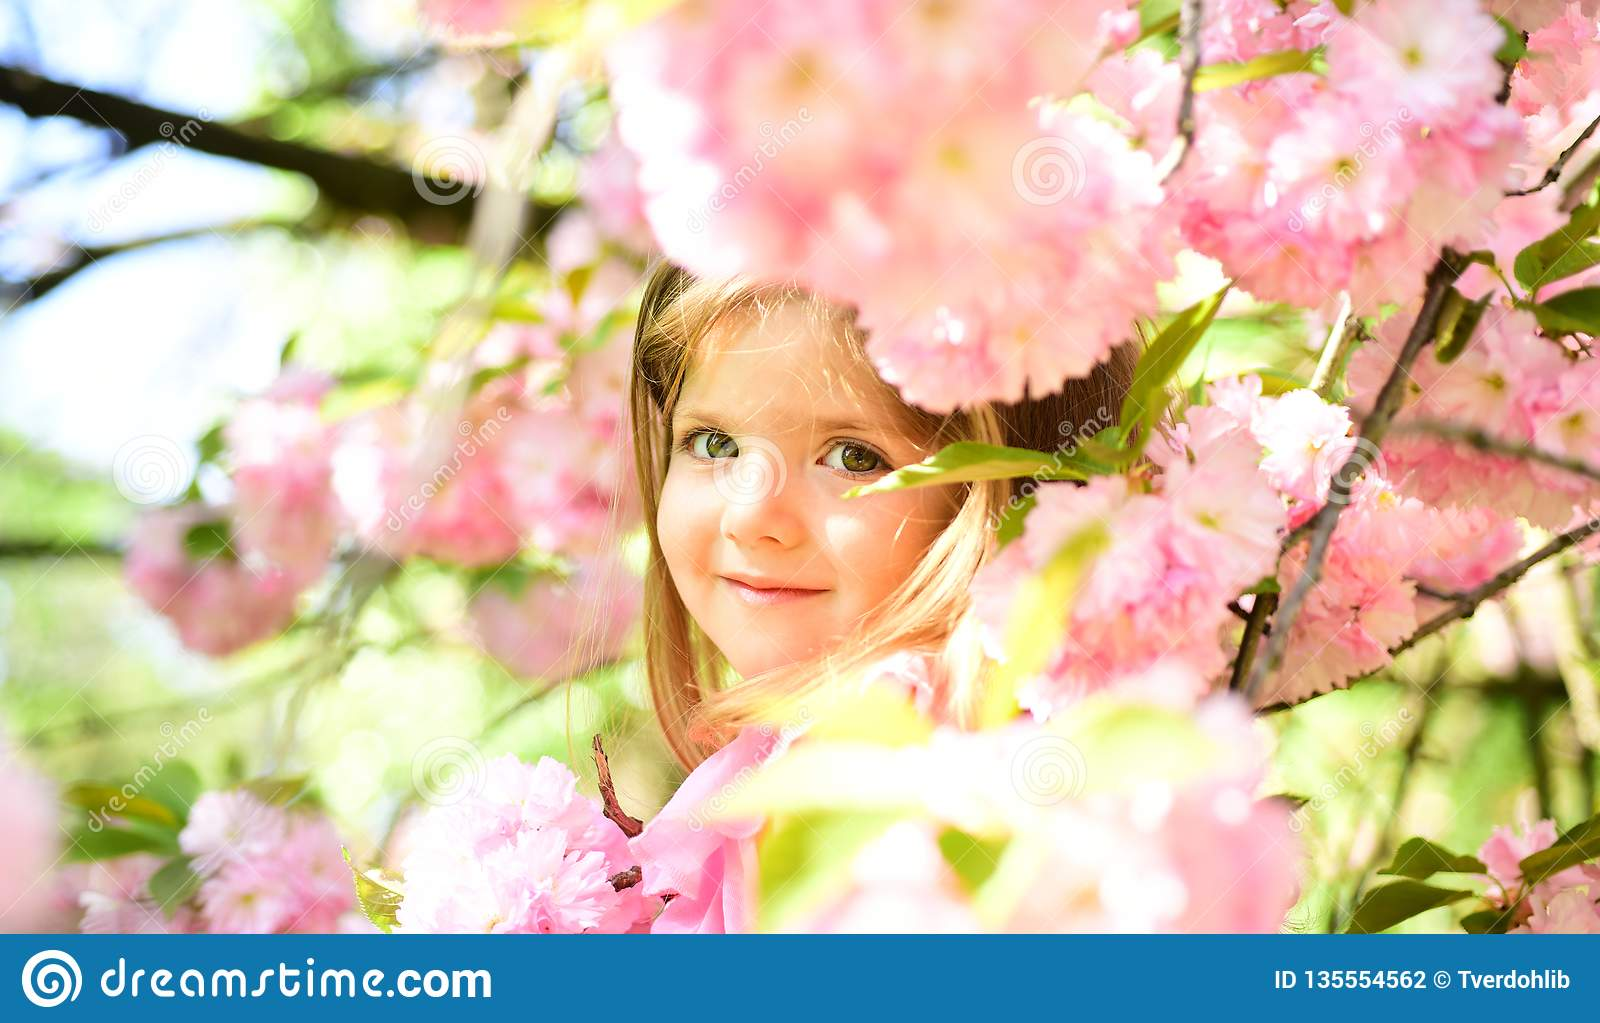 Pleasant spring day. Small child. Natural beauty. Childrens day. Summer girl fashion. Happy childhood. face and skincare